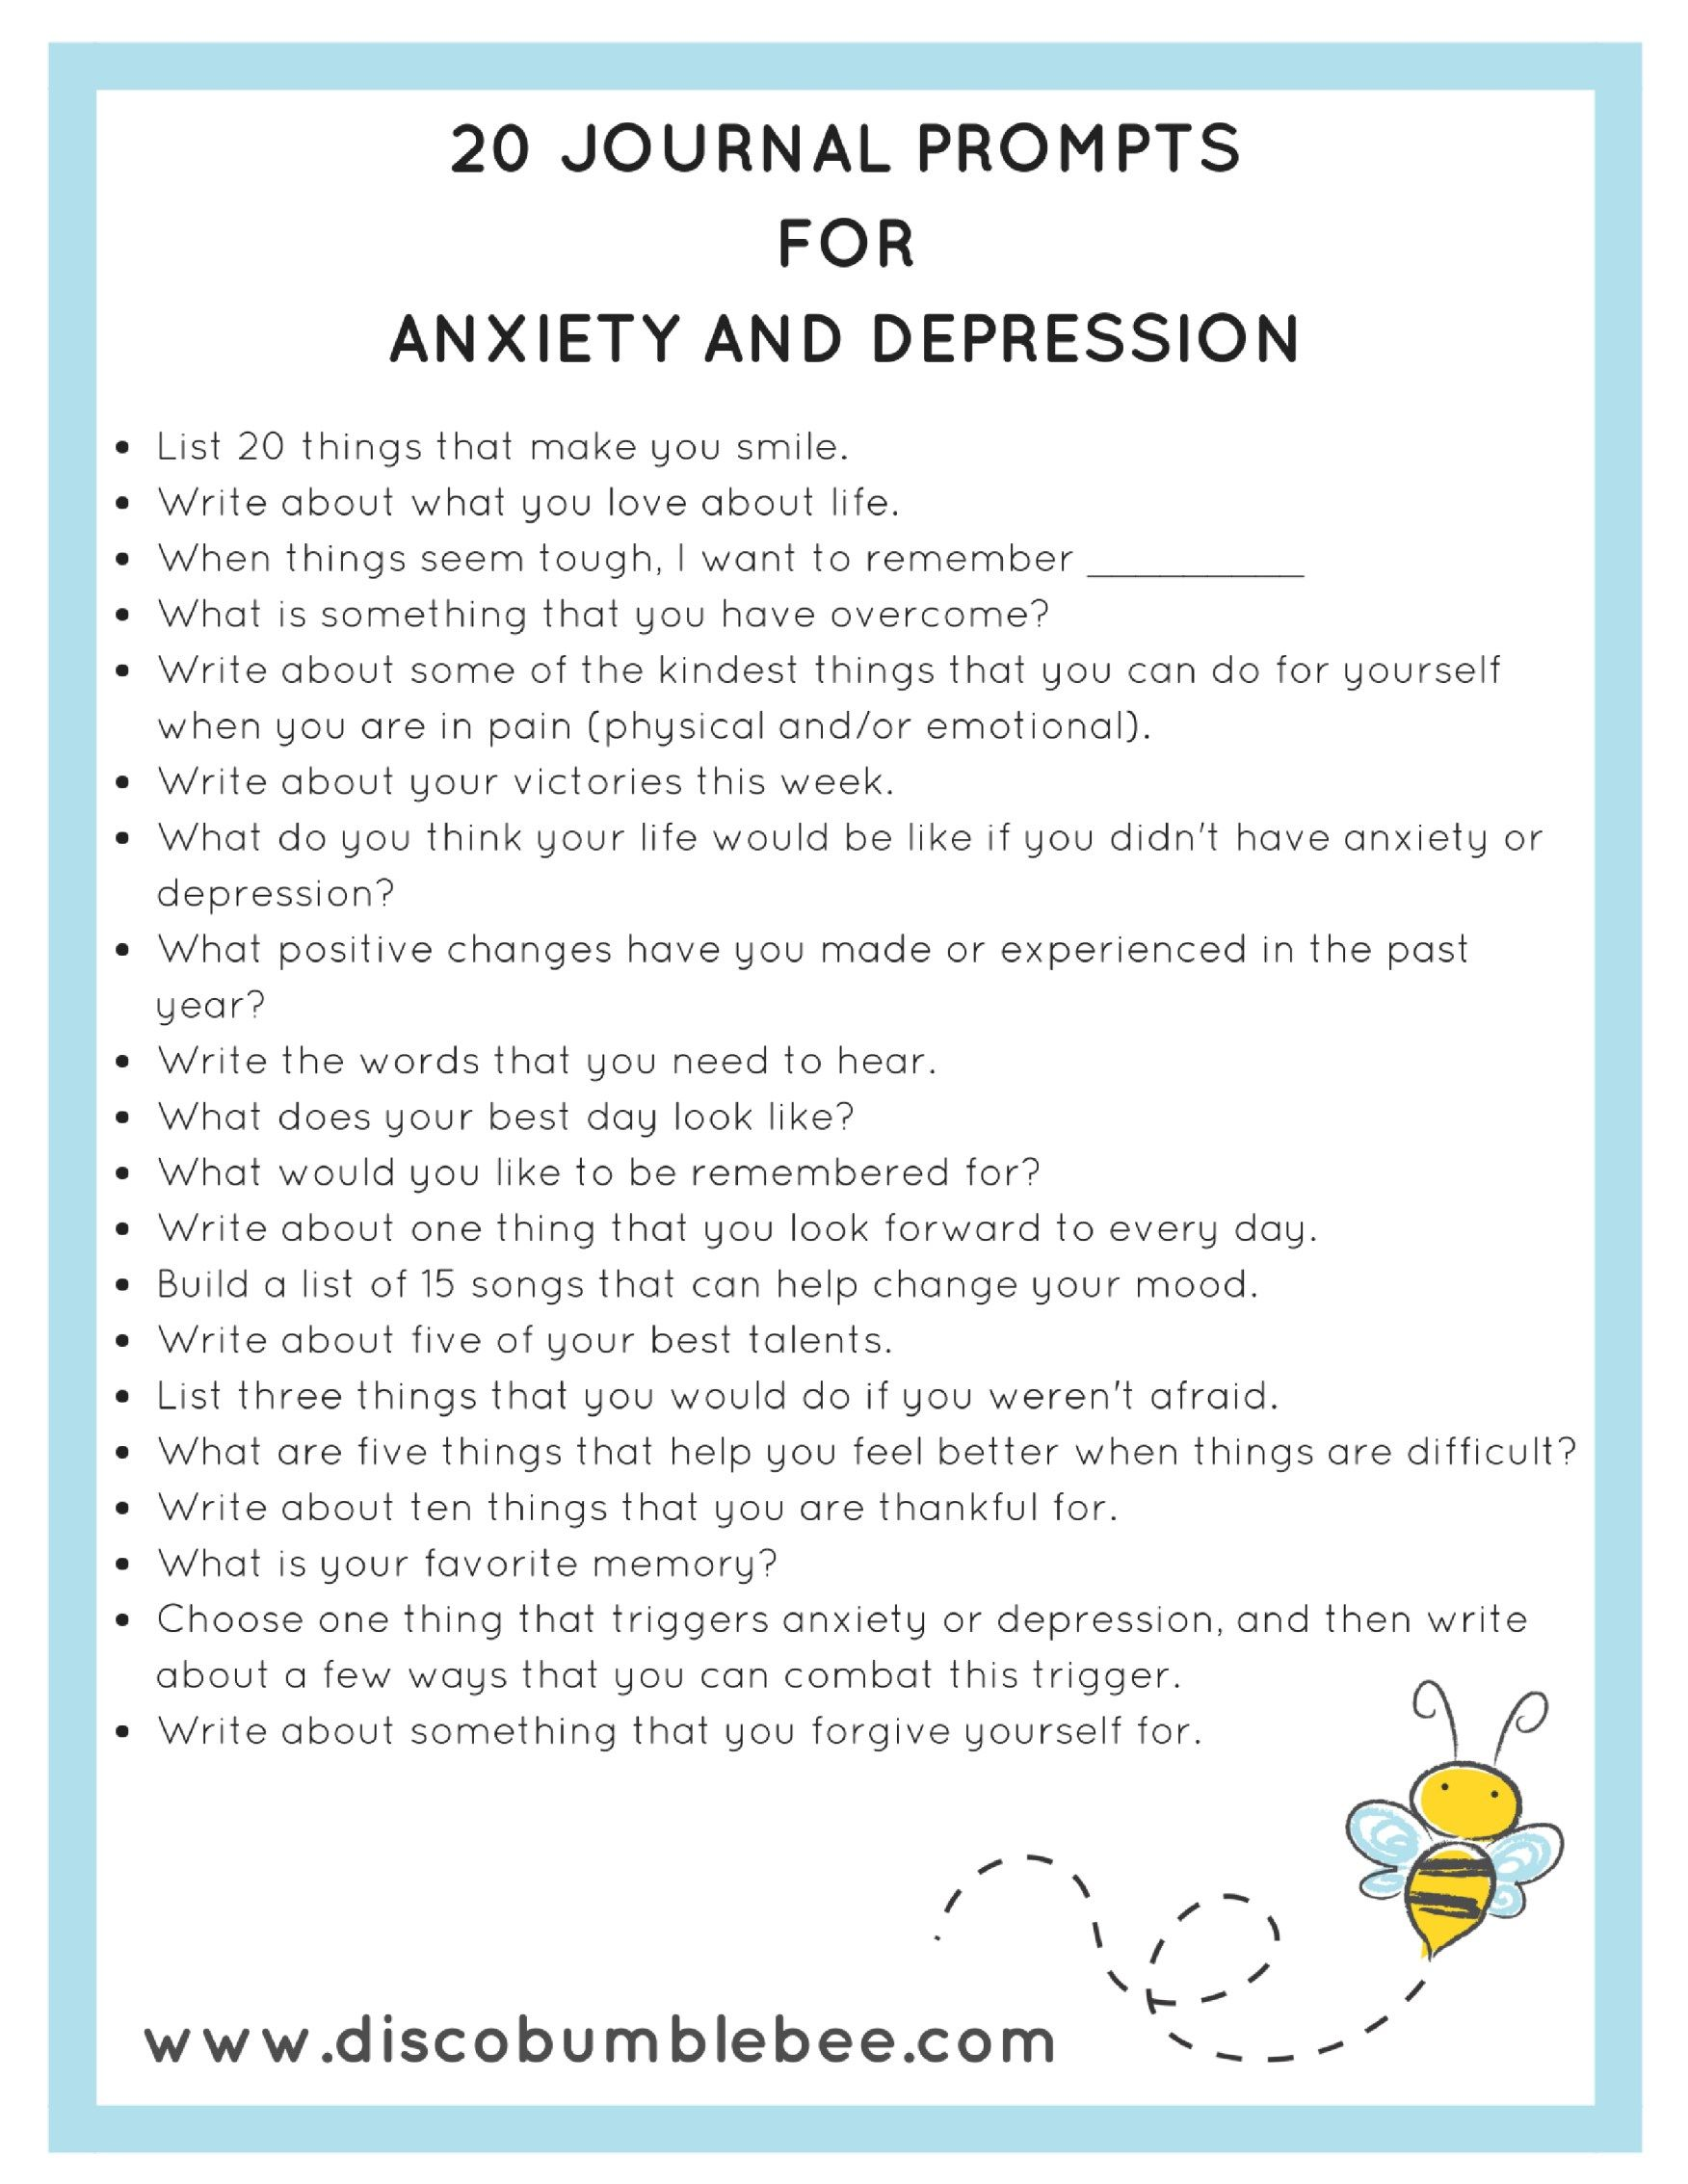 20 Journal Prompts For Anxiety And Depression In